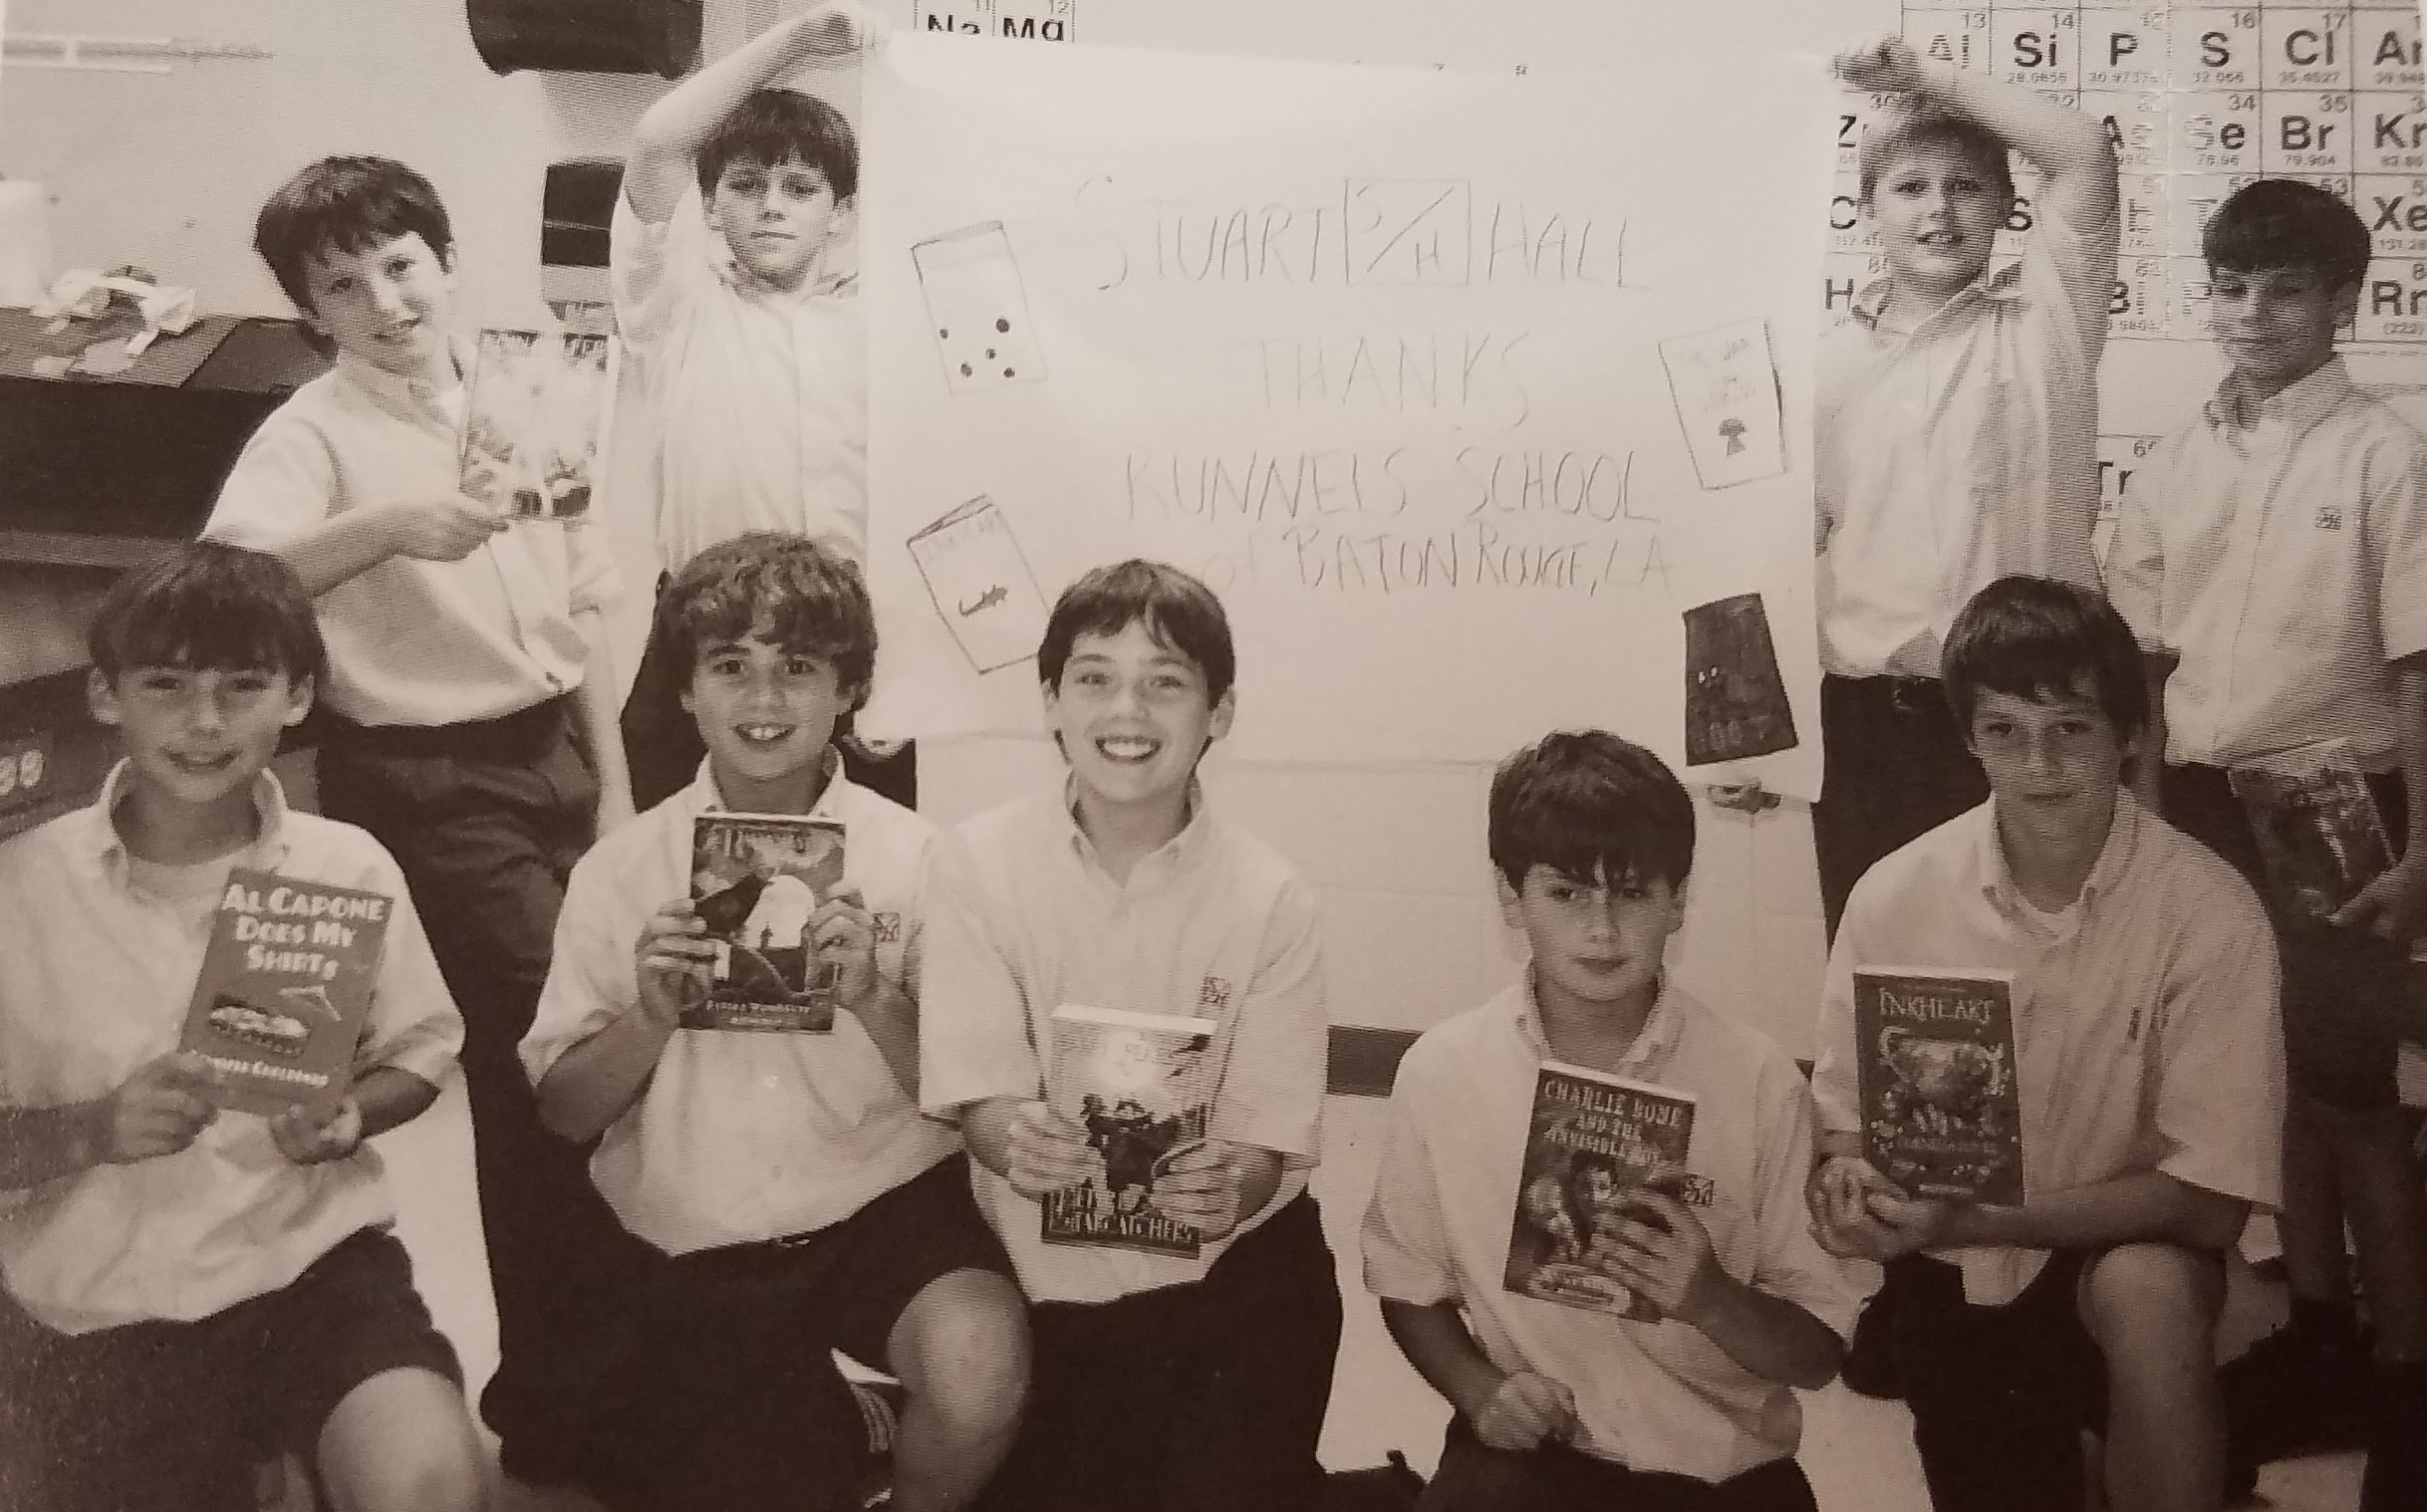 When Stuart Hall reopened in November 2005 following Hurricane Katrina, Runnels' students and faculty donated a collection of books for the Fifth and Sixth Grade classroom libraries, which had been destroyed when our campus was flooded.